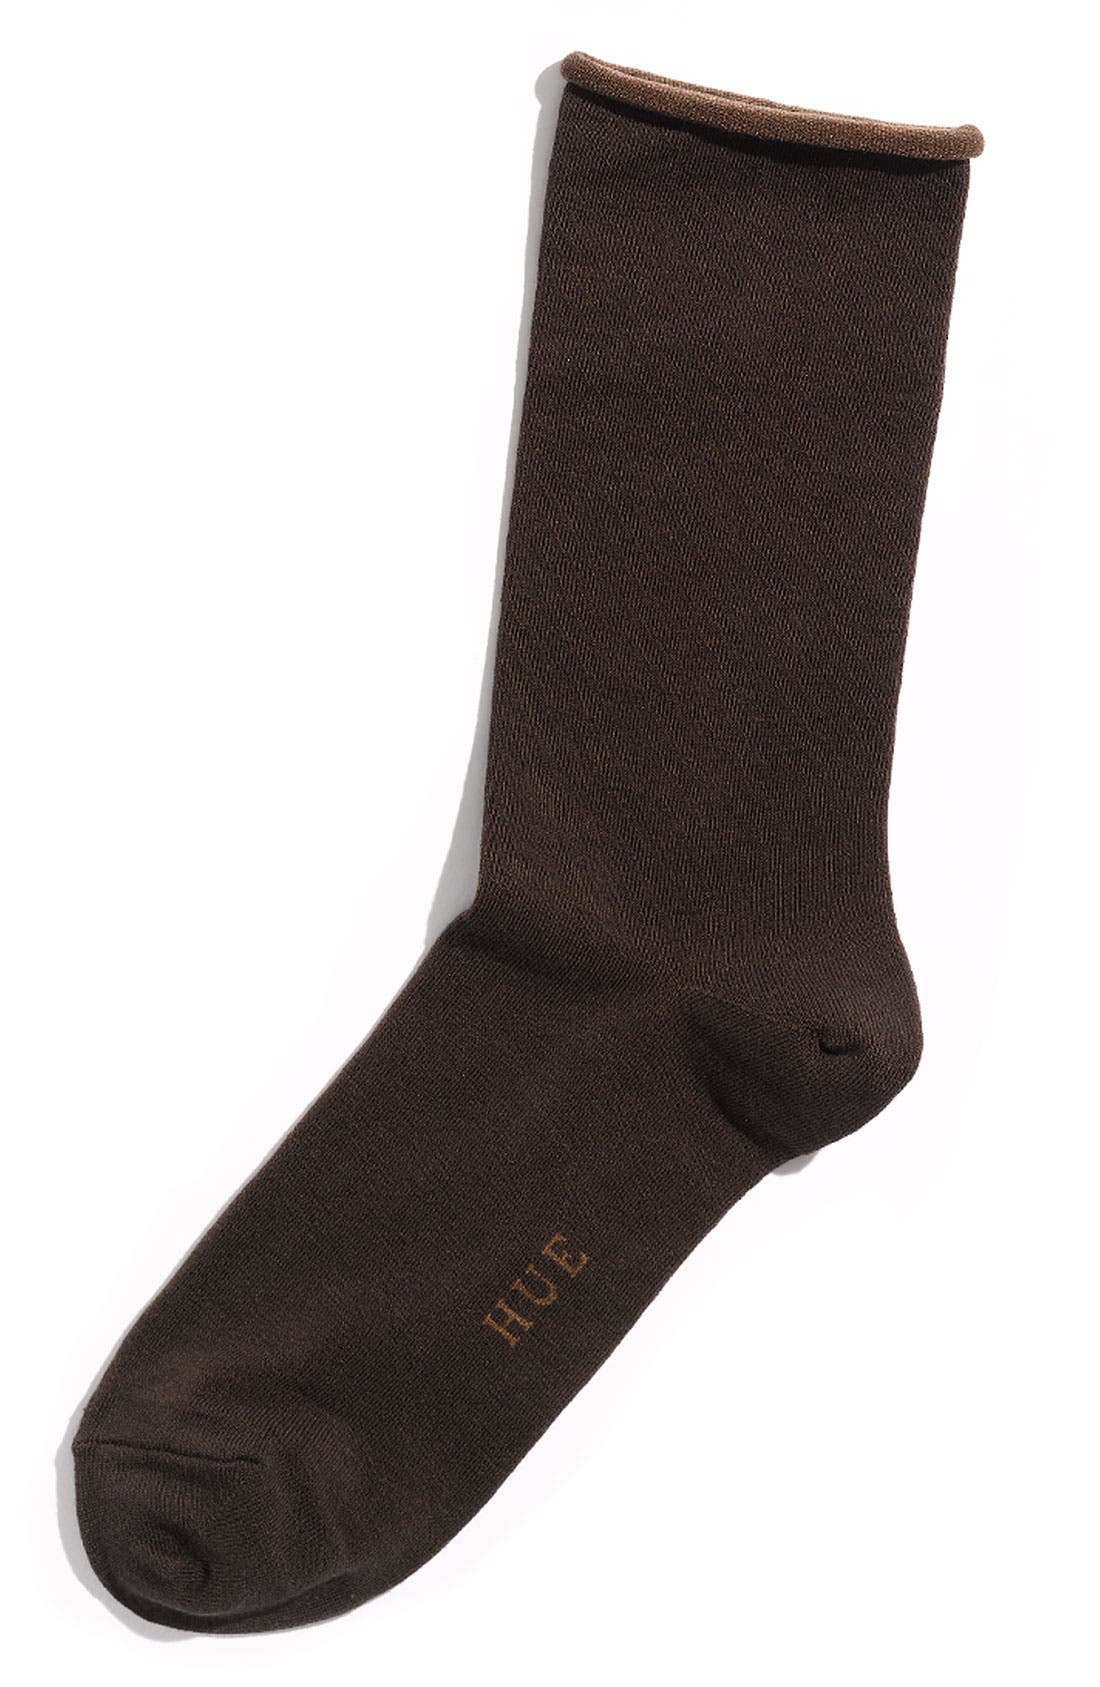 Alternate Image 1 Selected - Hue 'Jeans' Socks (3 for $18)